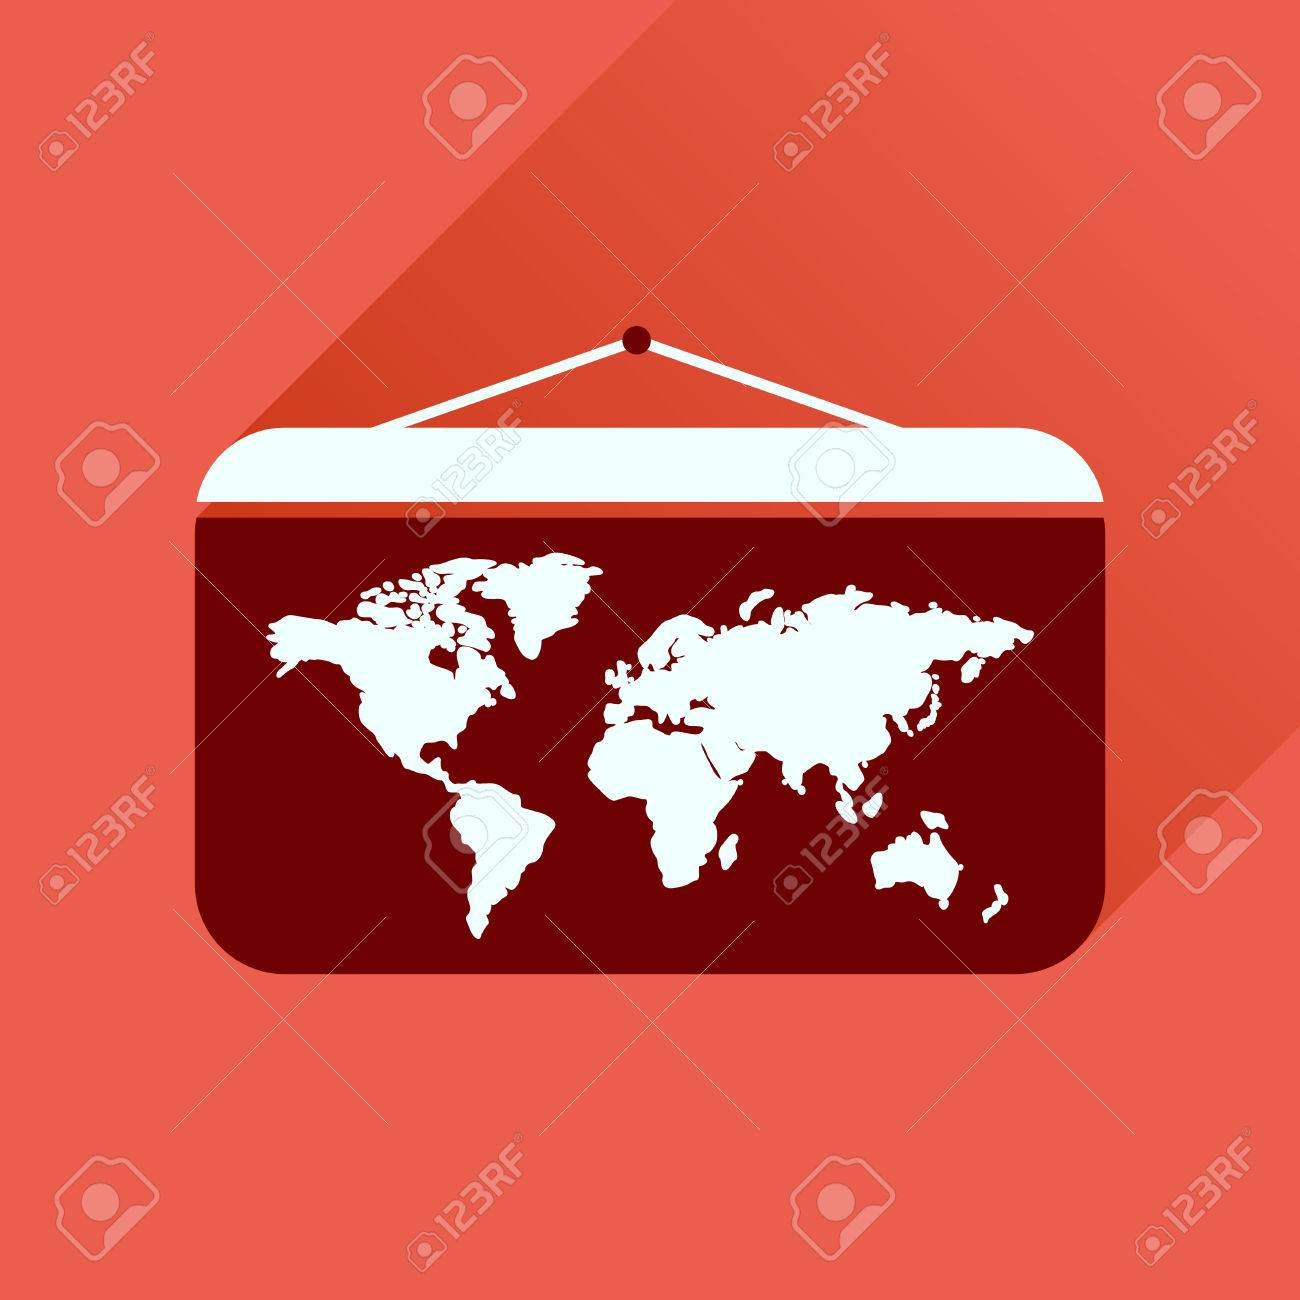 Flat icon with long shadow world map royalty free cliparts vectors flat icon with long shadow world map stock vector 60110288 gumiabroncs Images